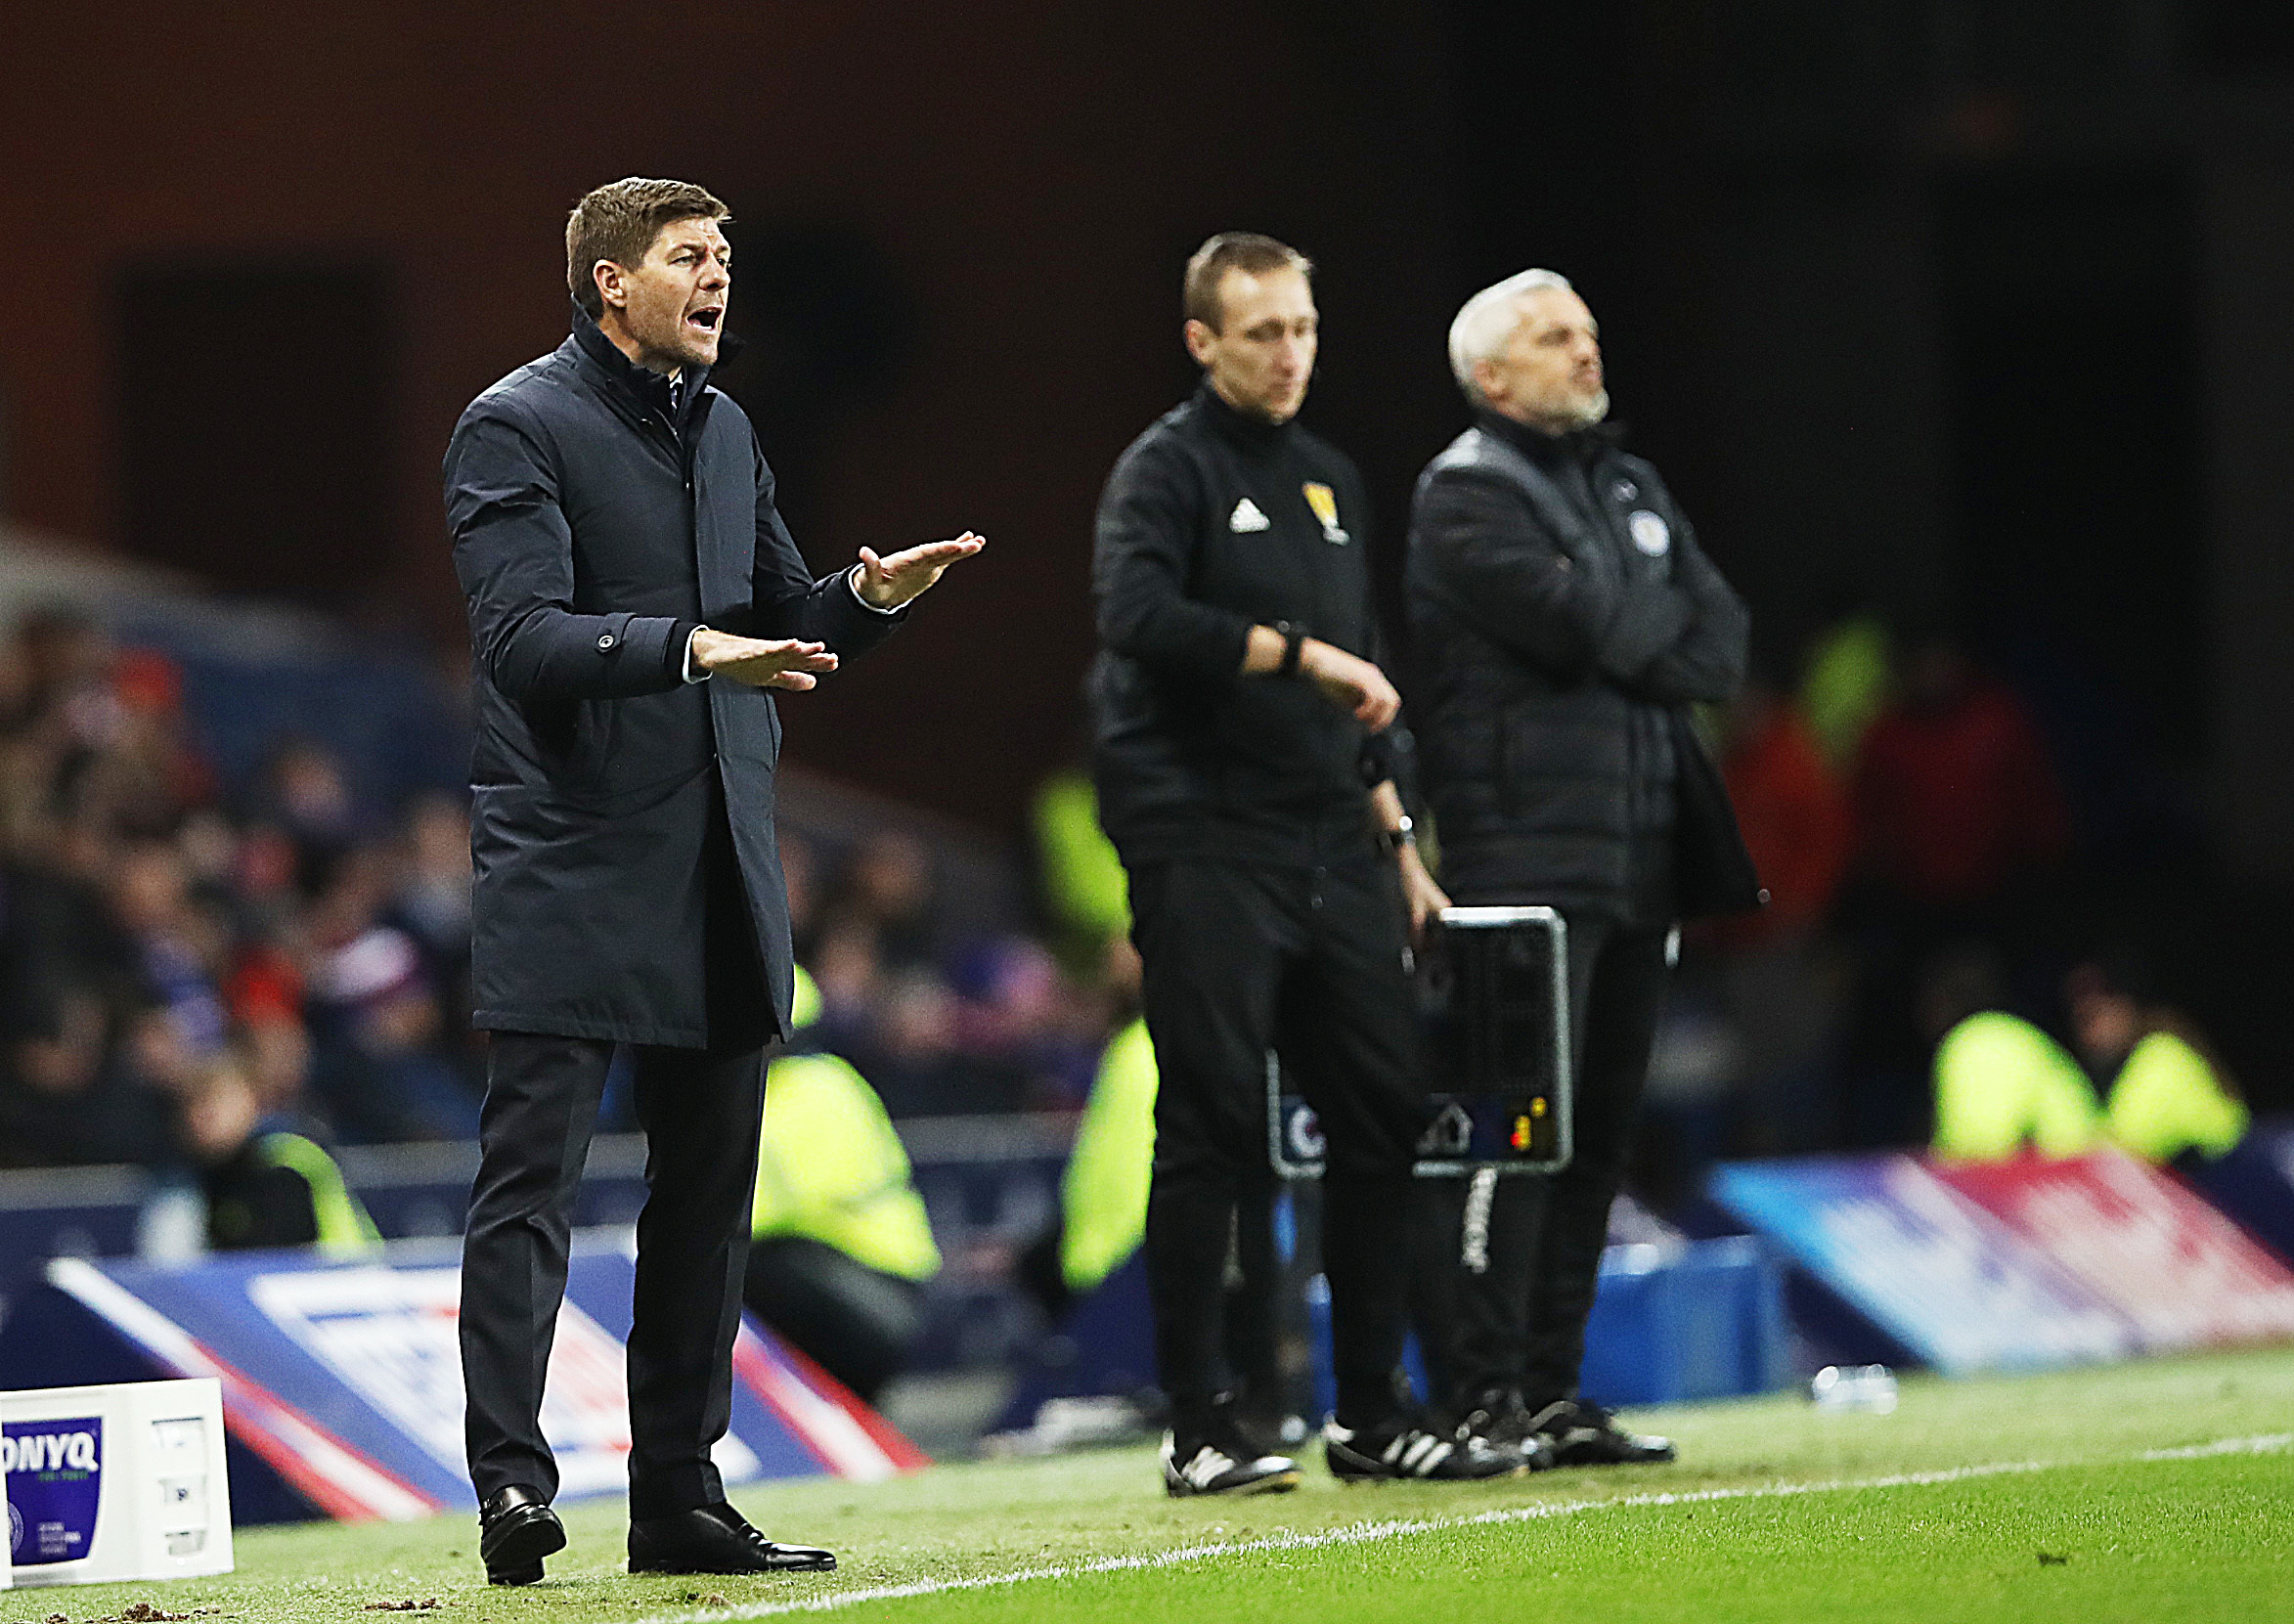 Steven Gerrard 'delighted' for Rangers to win ugly against St Mirren and maintain title push